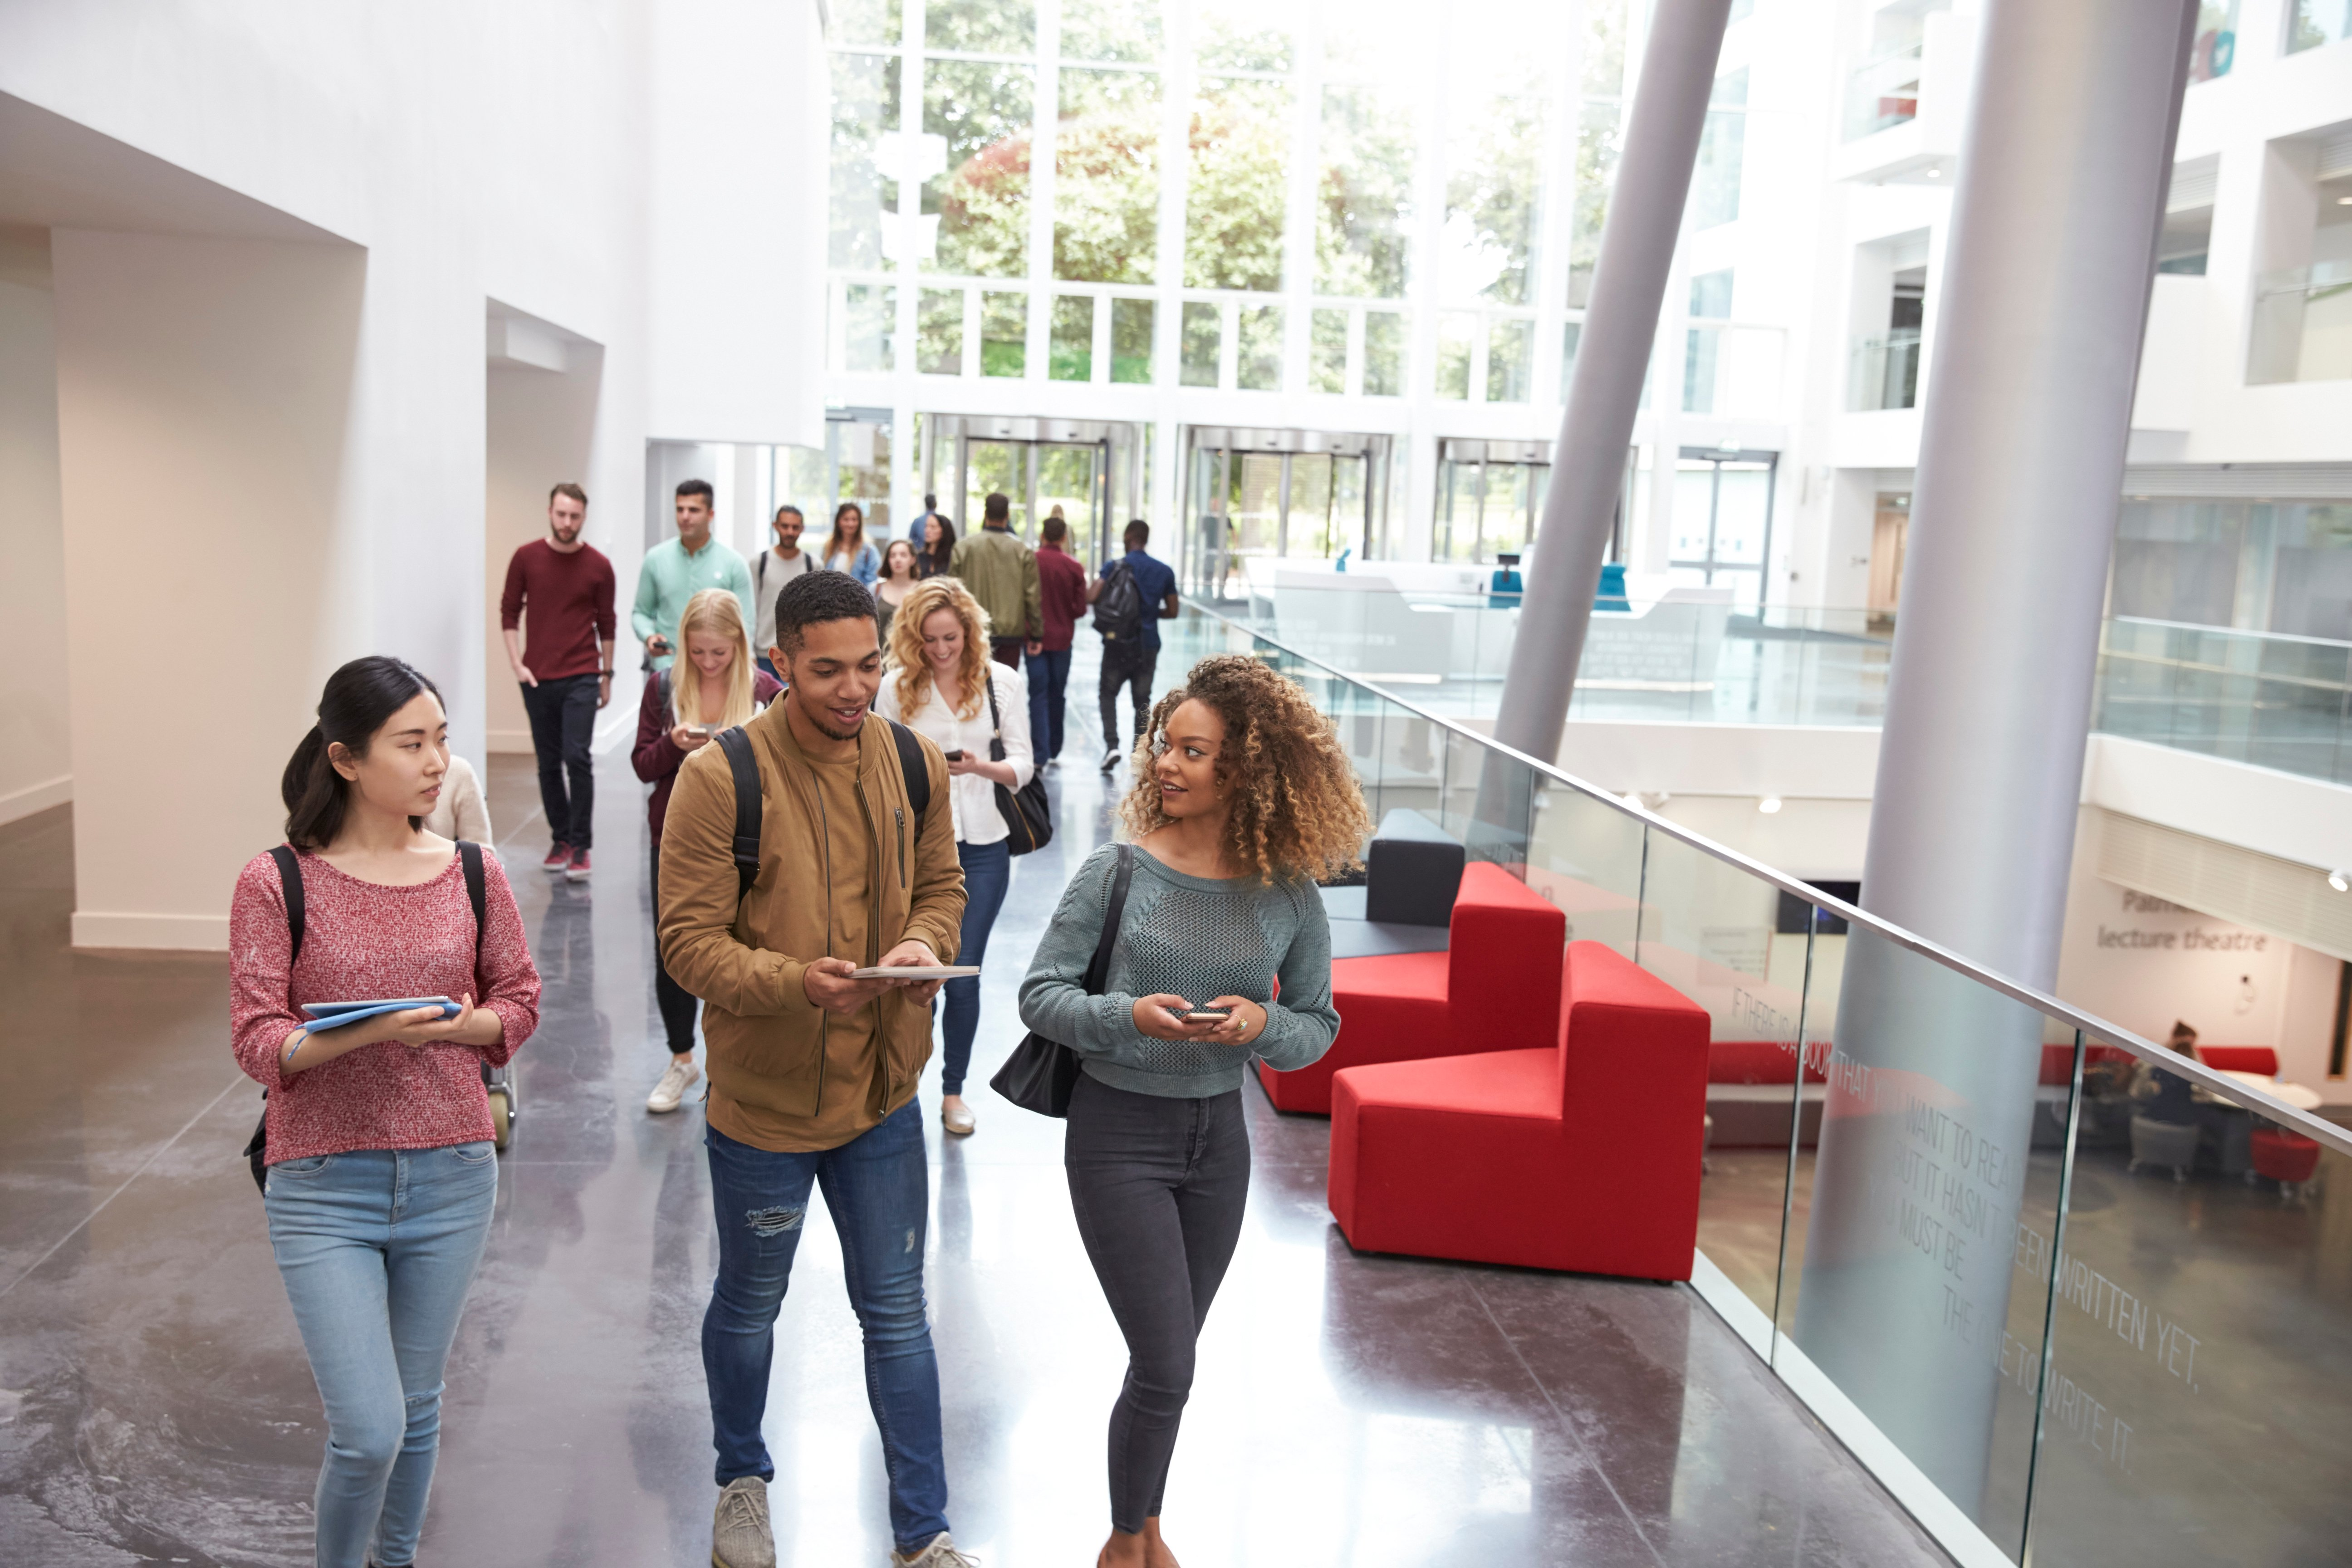 A group of students walk through a large modern university building